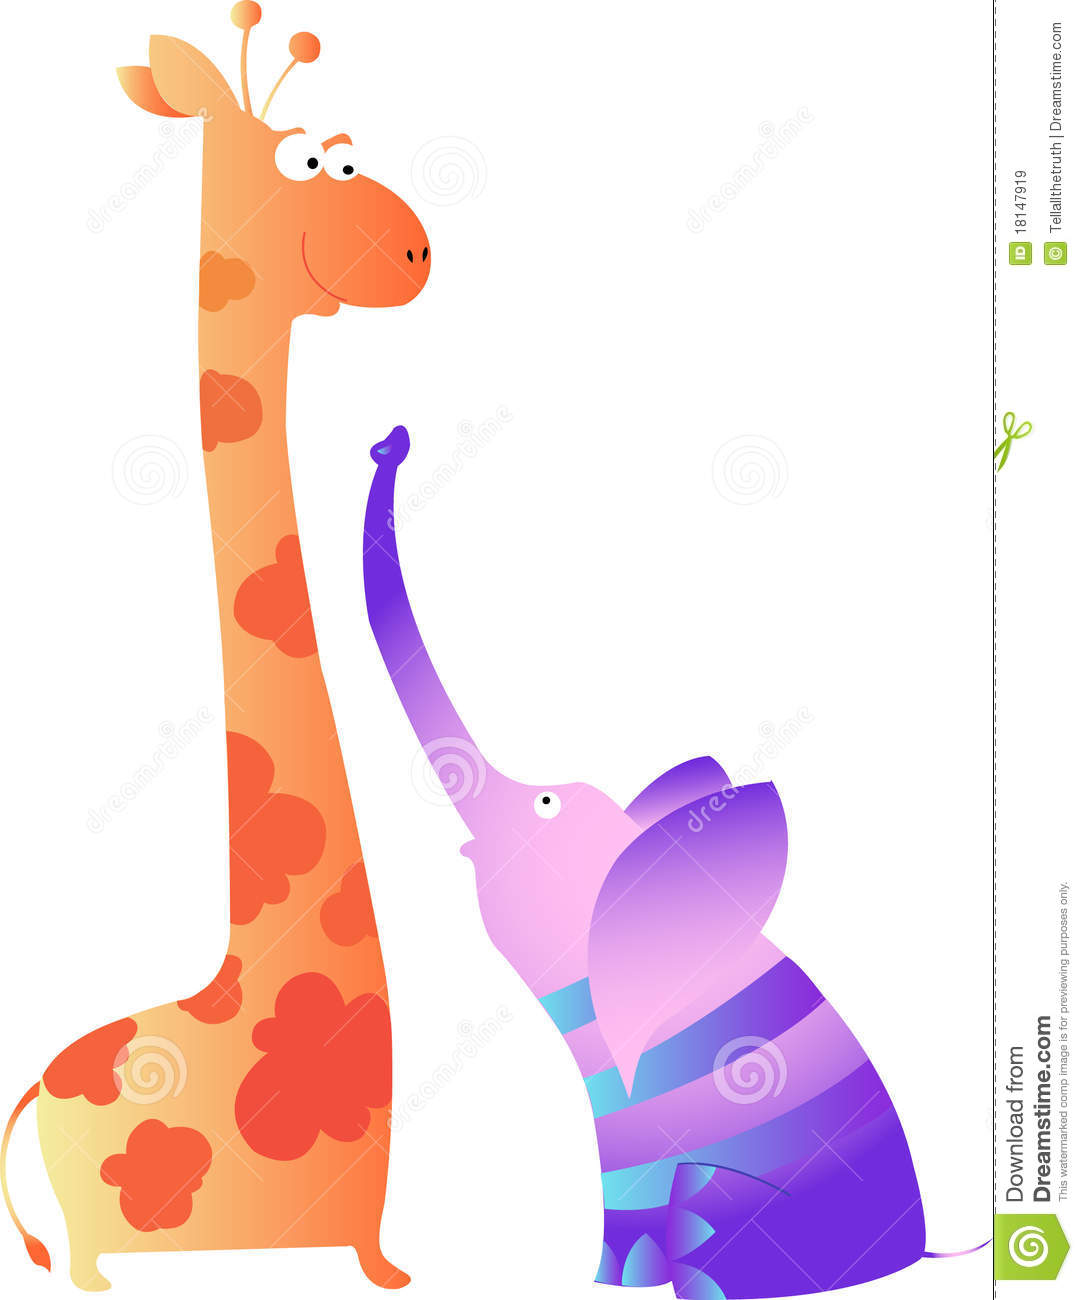 Cute Giraffe And Sweet Elephant Royalty Free Stock Images ...